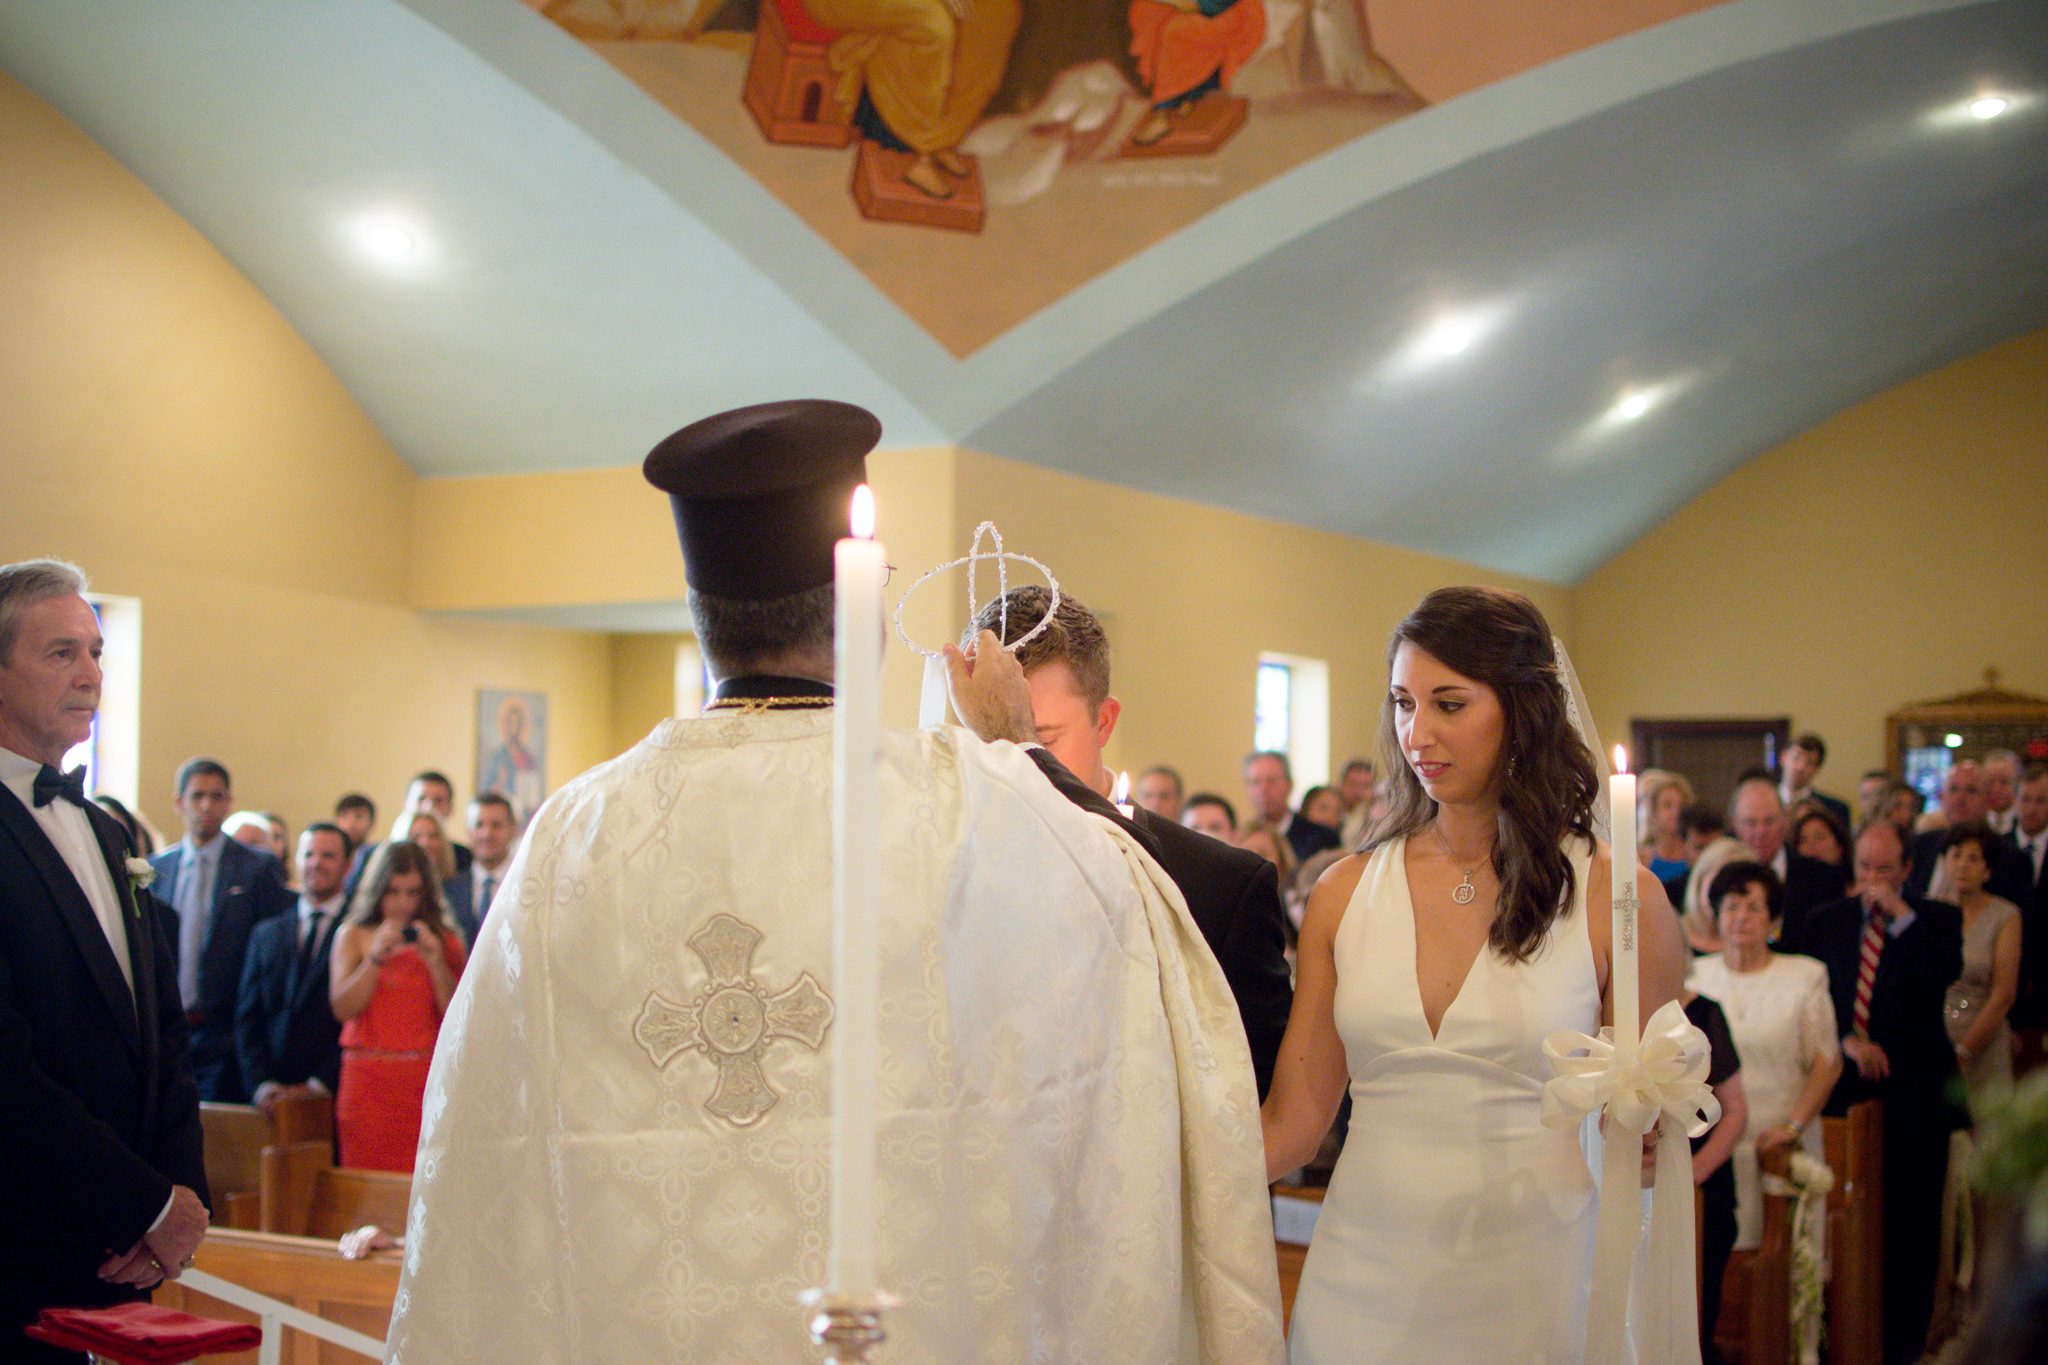 greek orthodox wedding (56 of 118).JPG